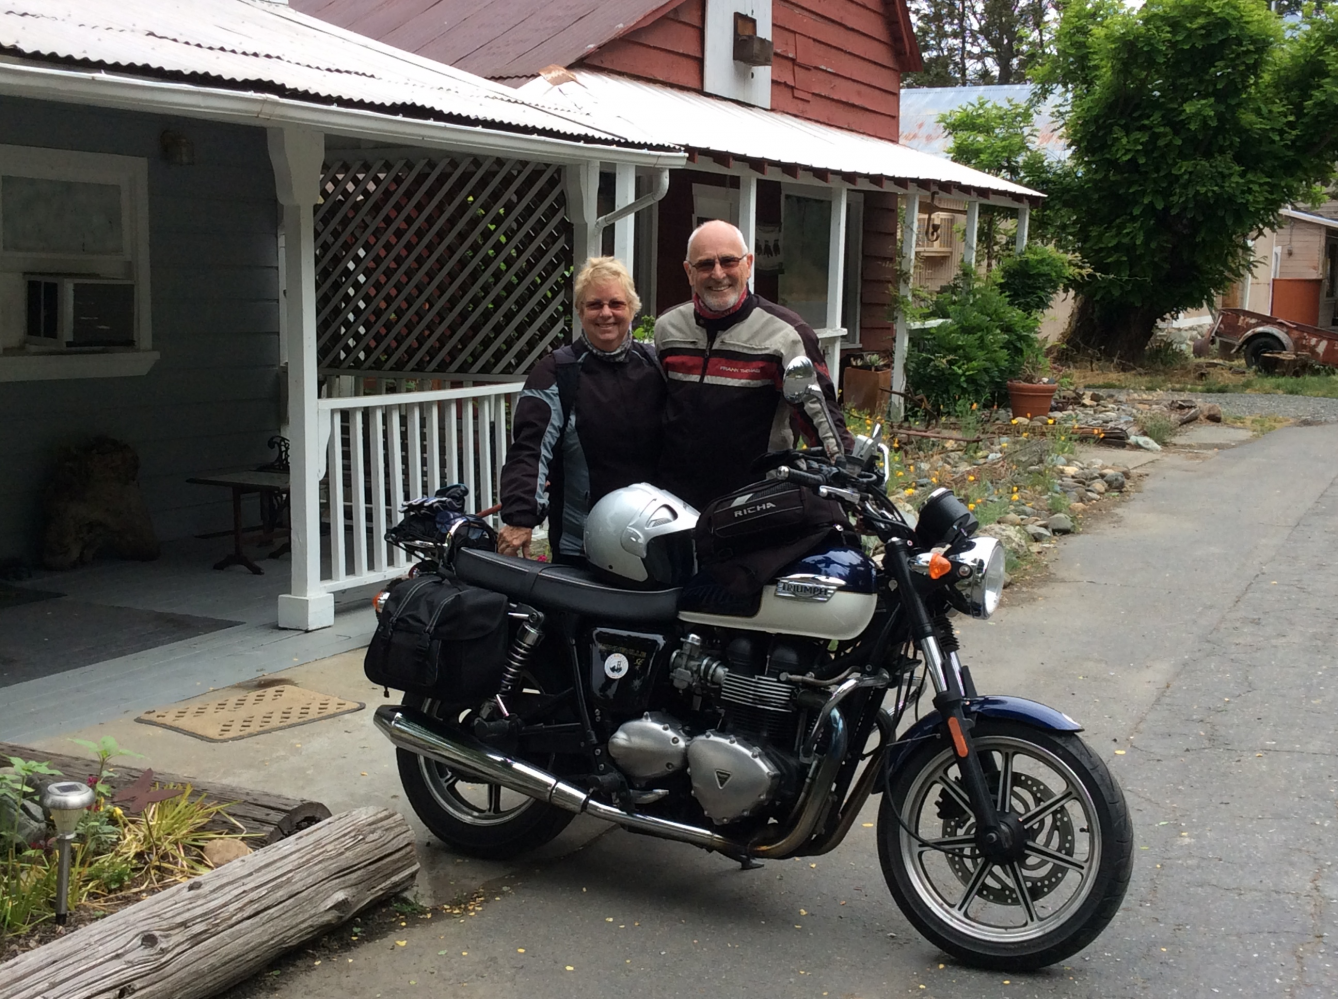 Our motorcycle touring guests